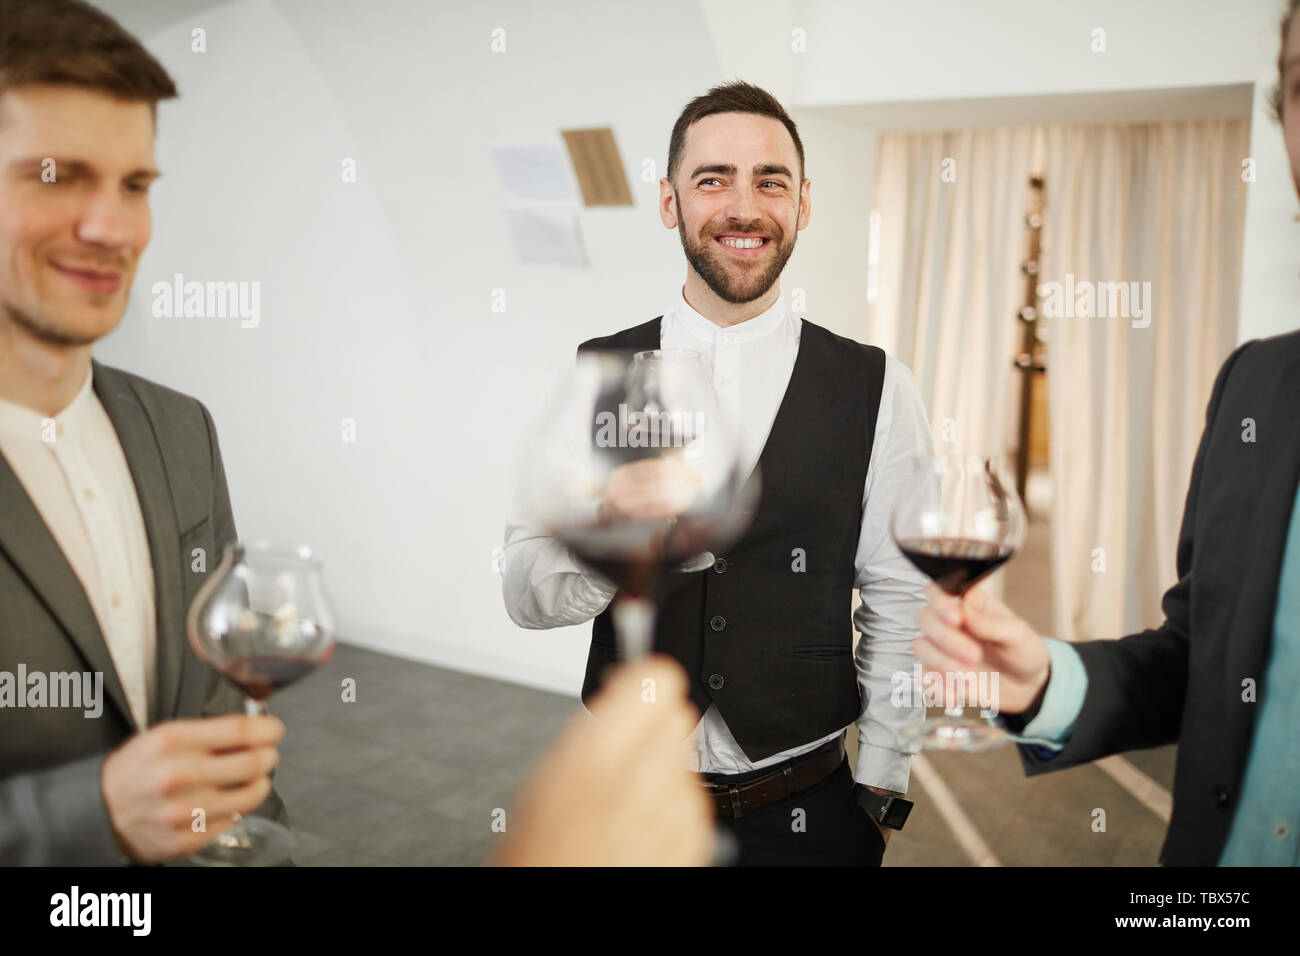 Portrait of professional sommeliers smiling happily and holding wine glasses, copy space Stock Photo